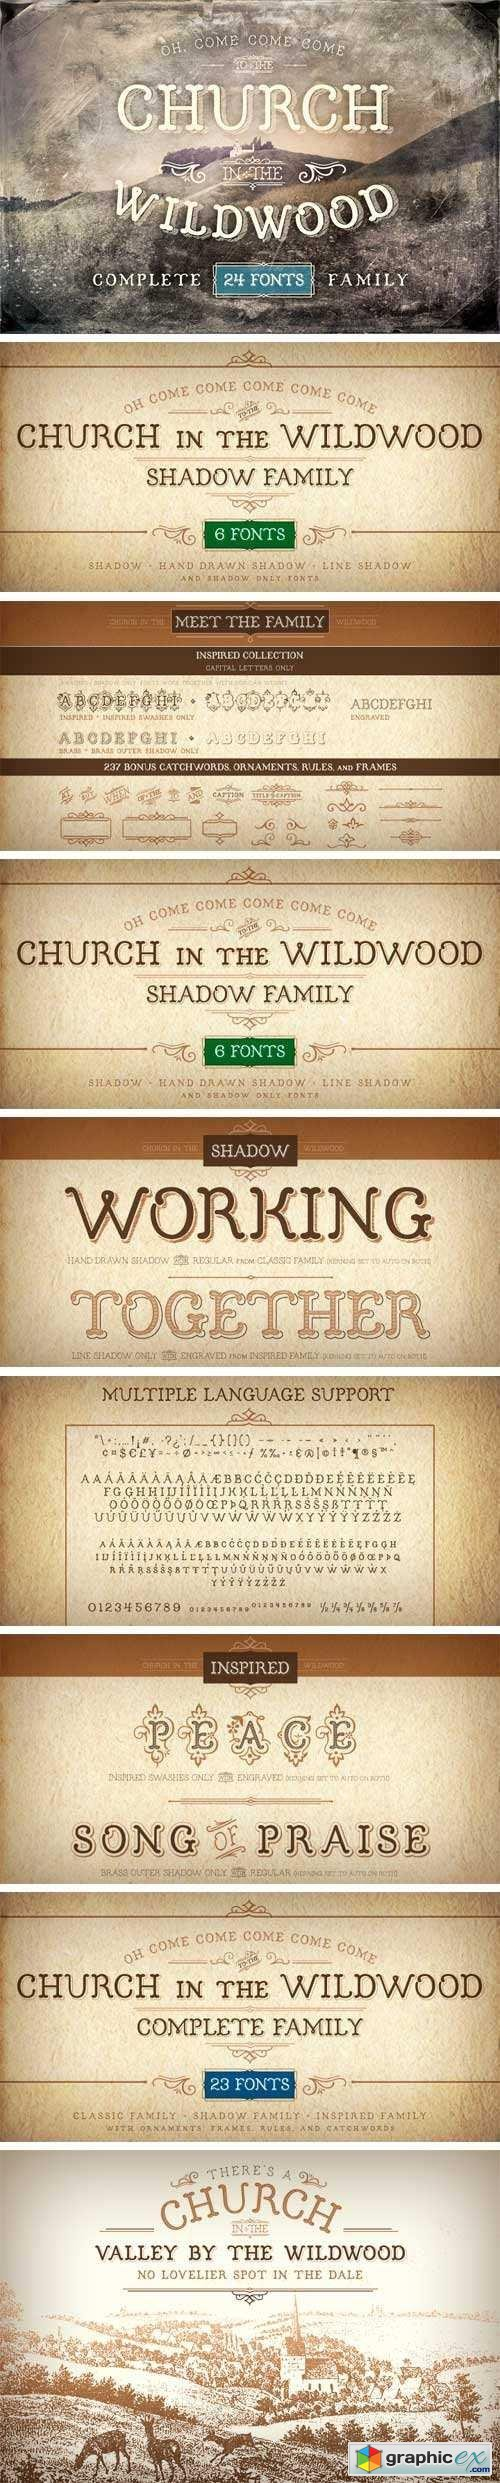 Church in the Wildwood Font Family - 24 Fonts for $40